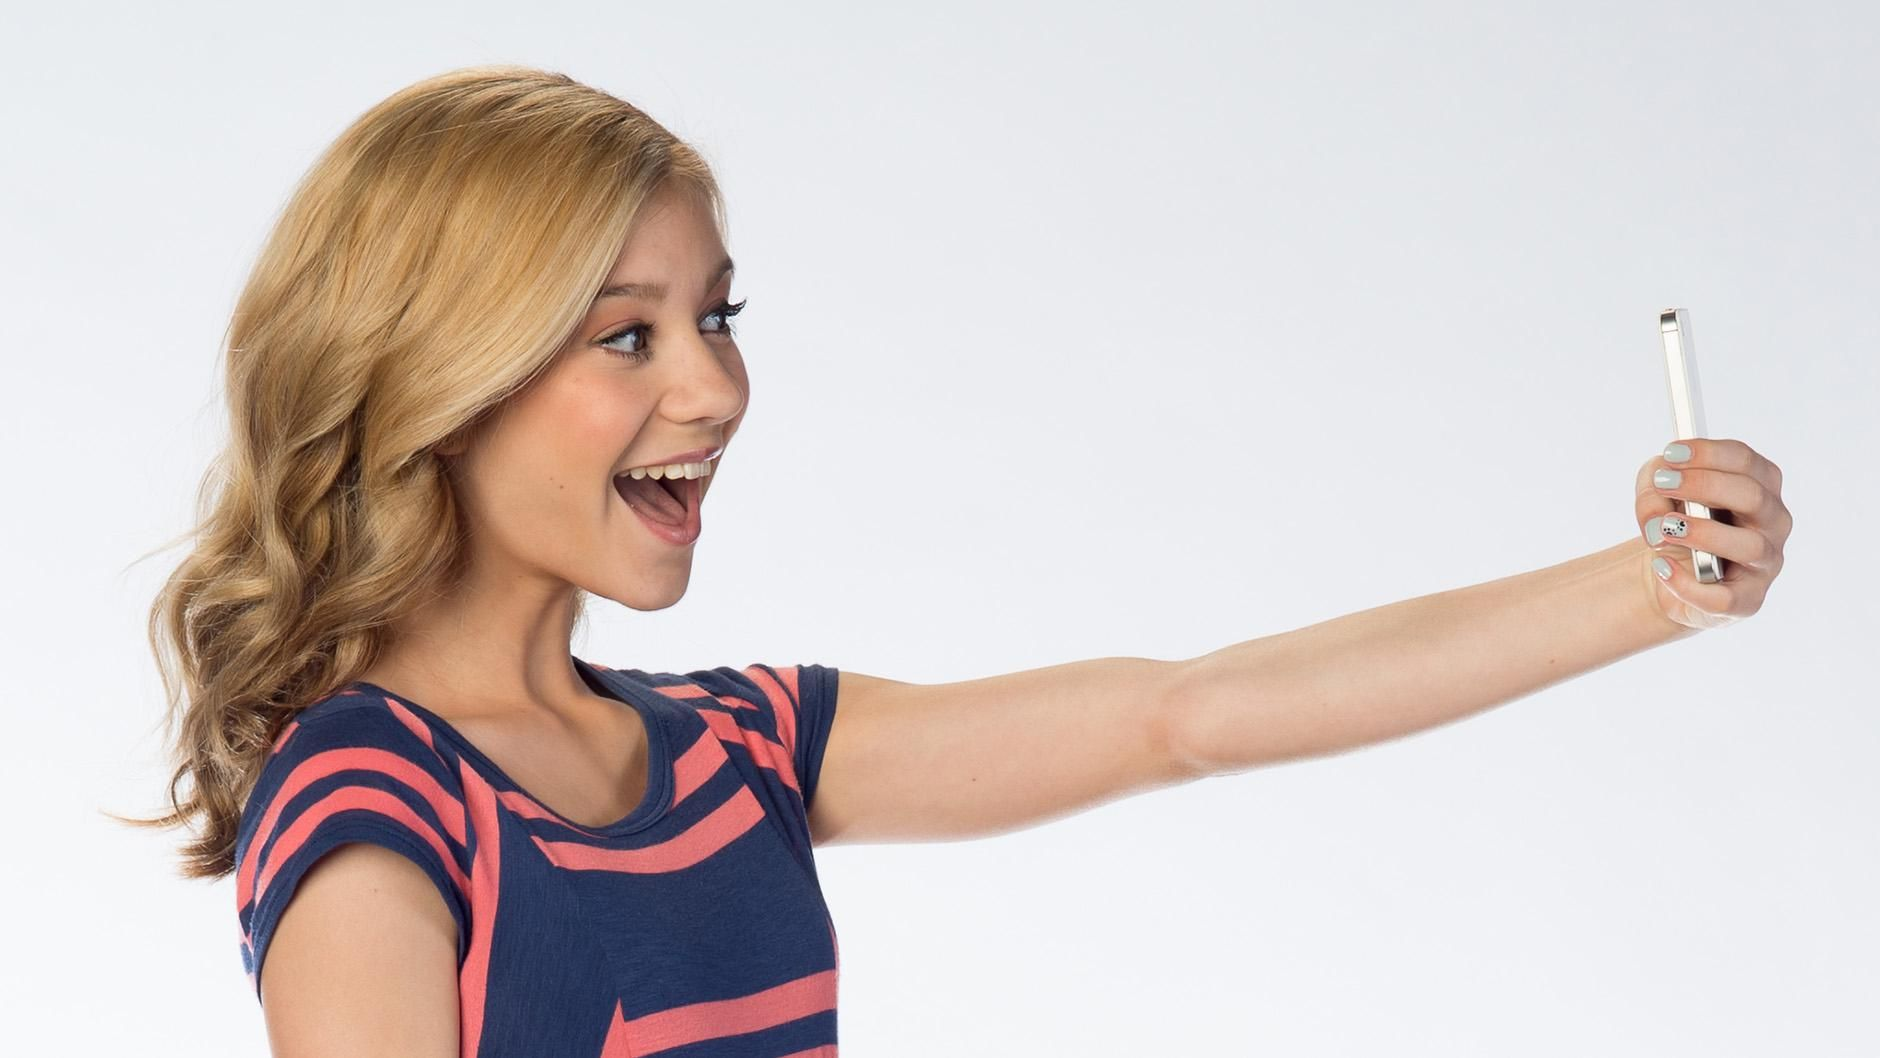 Former Disney Channel Star G Hannelius Reacts To Scenes